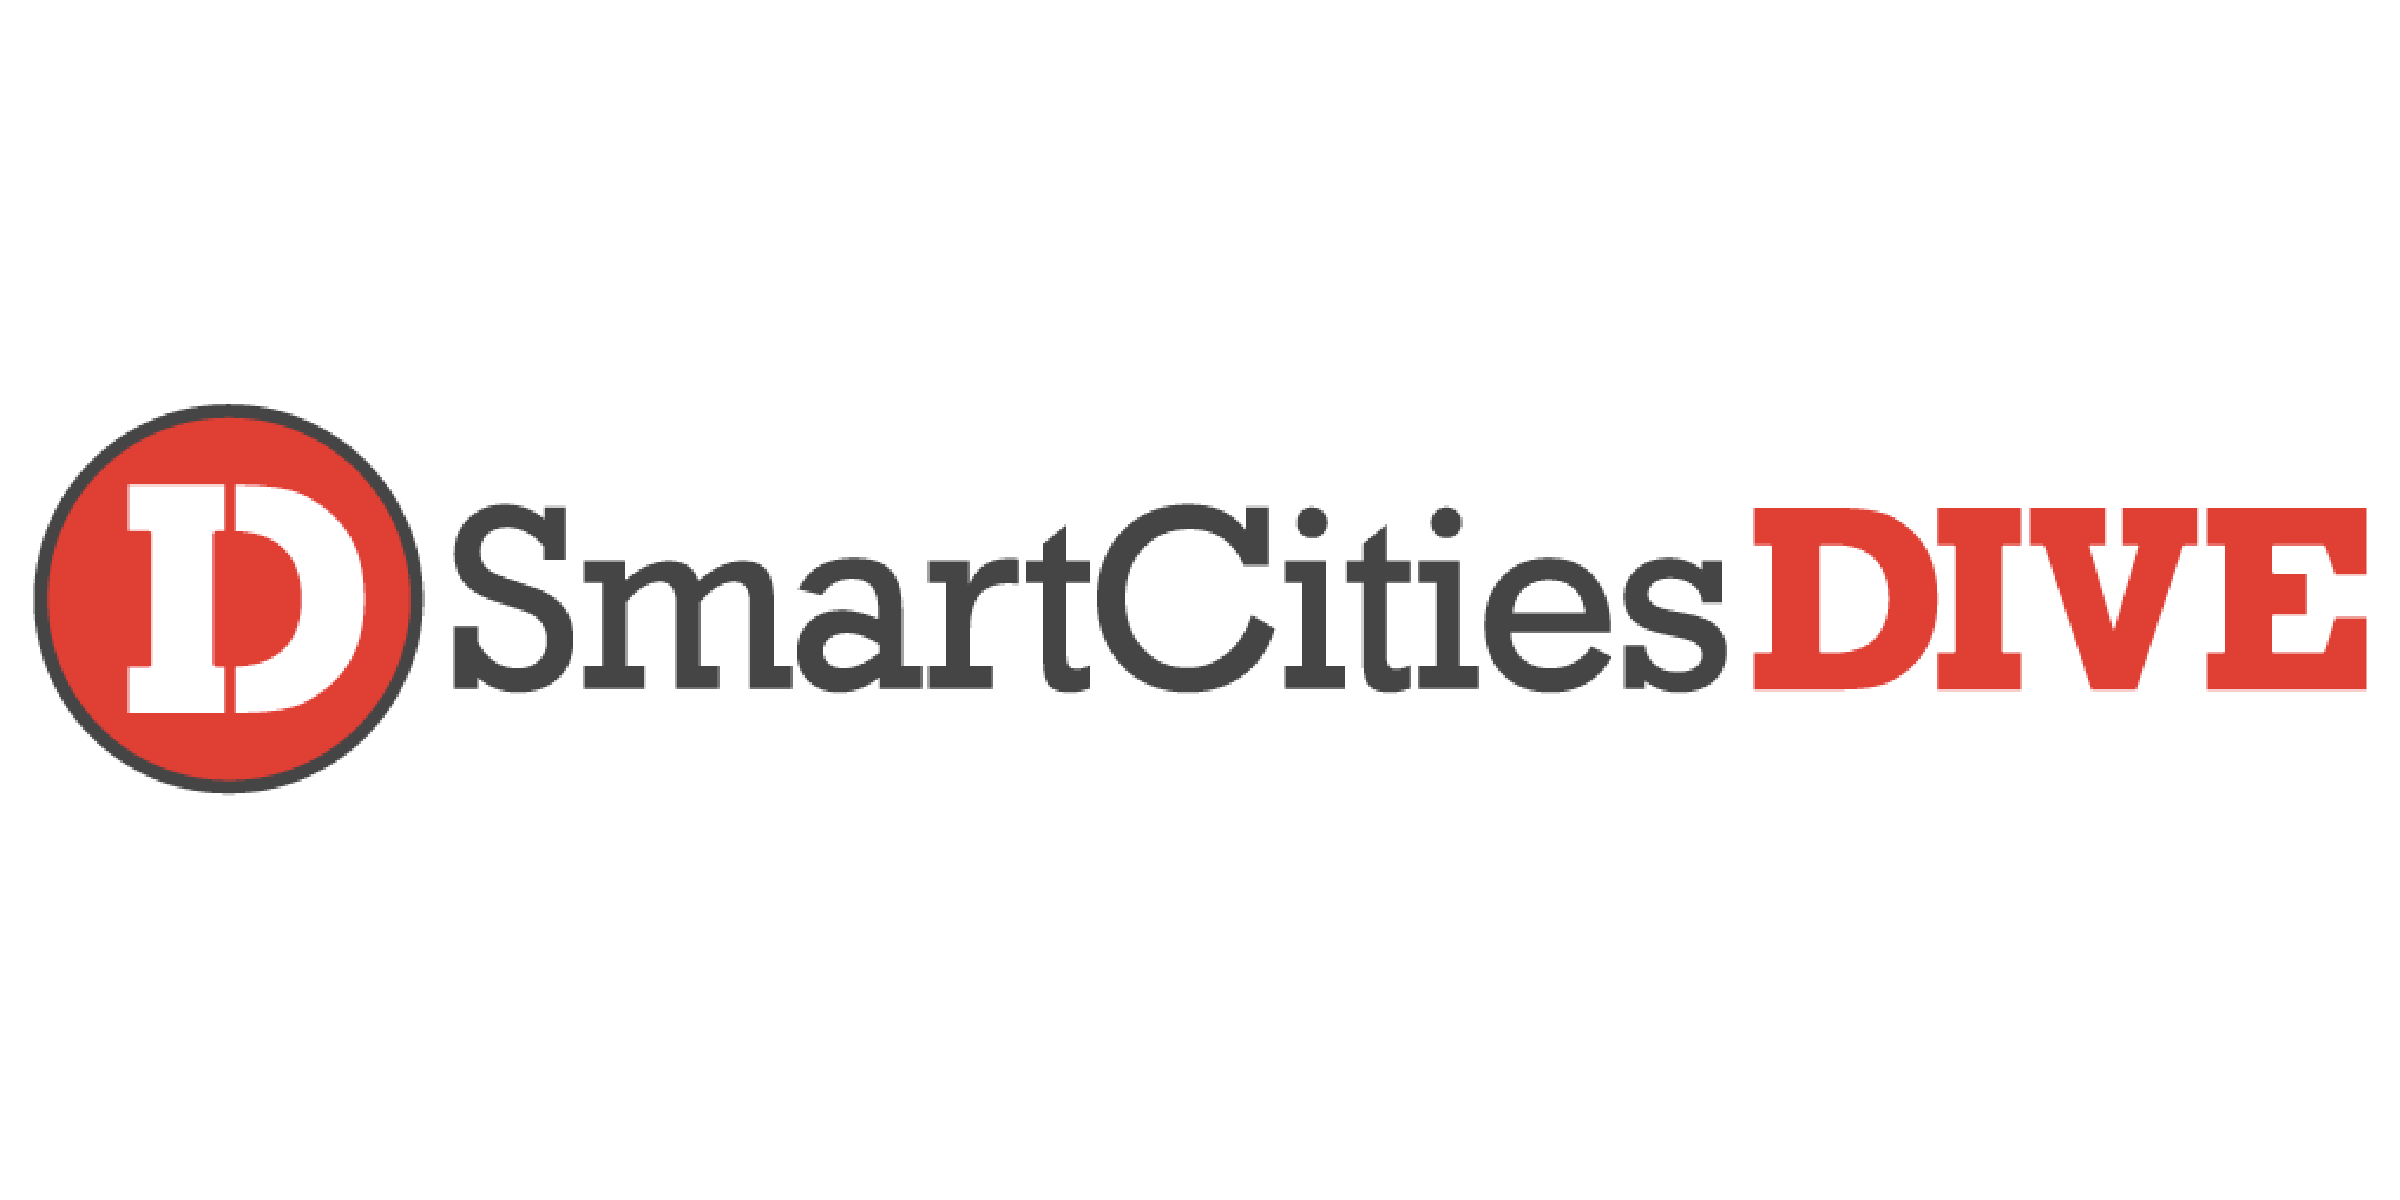 smartcitiesdive.png